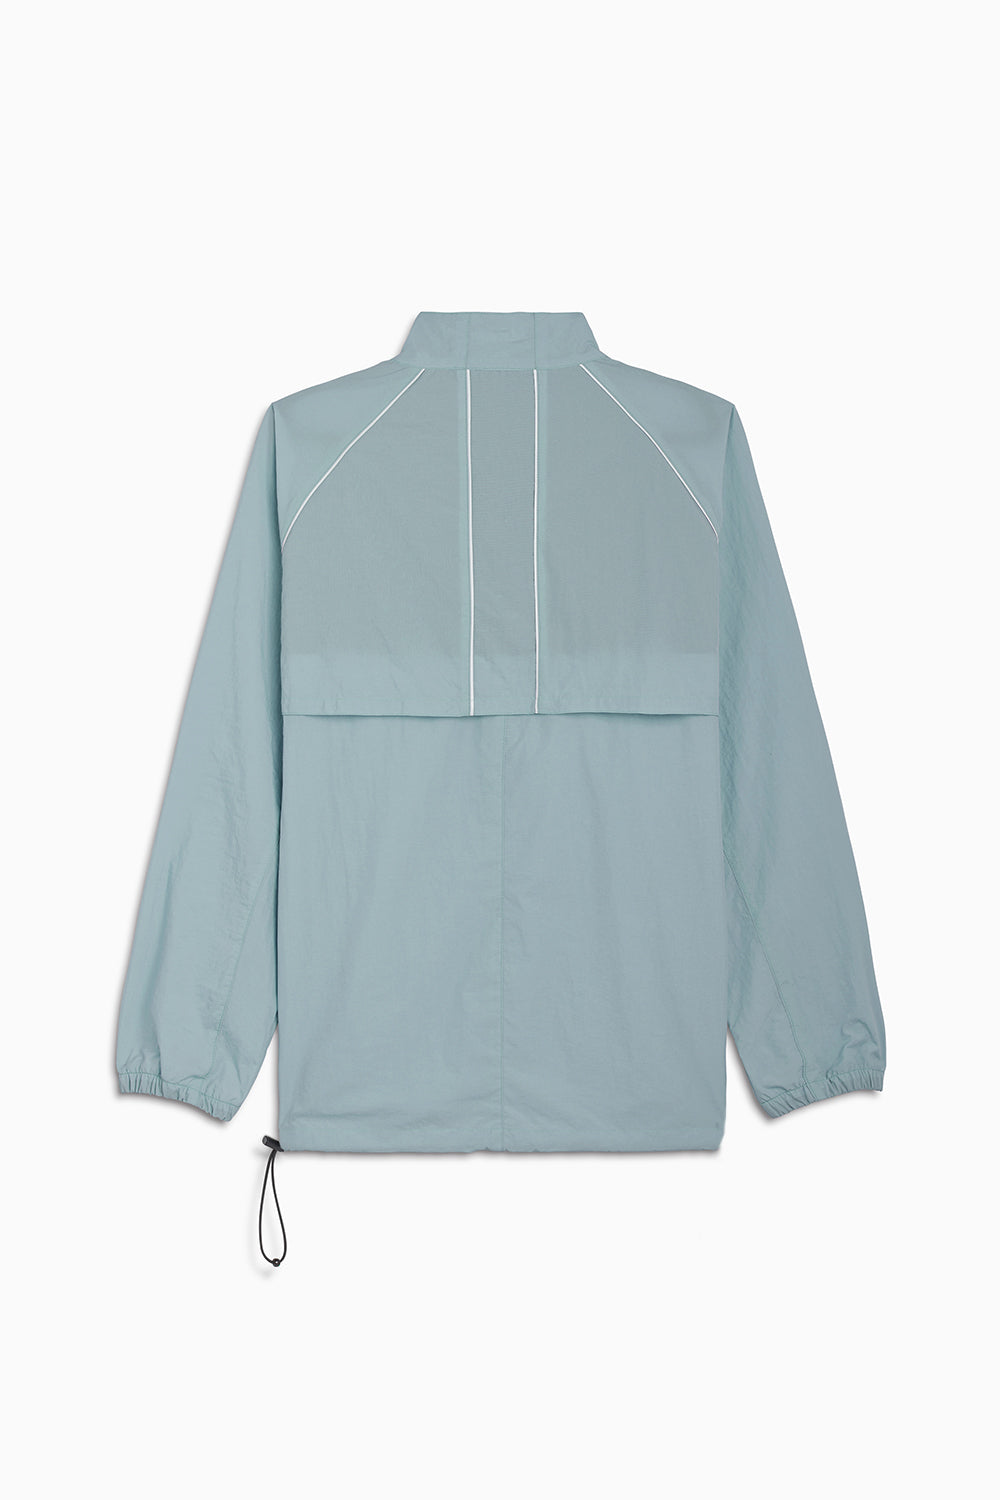 pullover batting jacket / sea foam